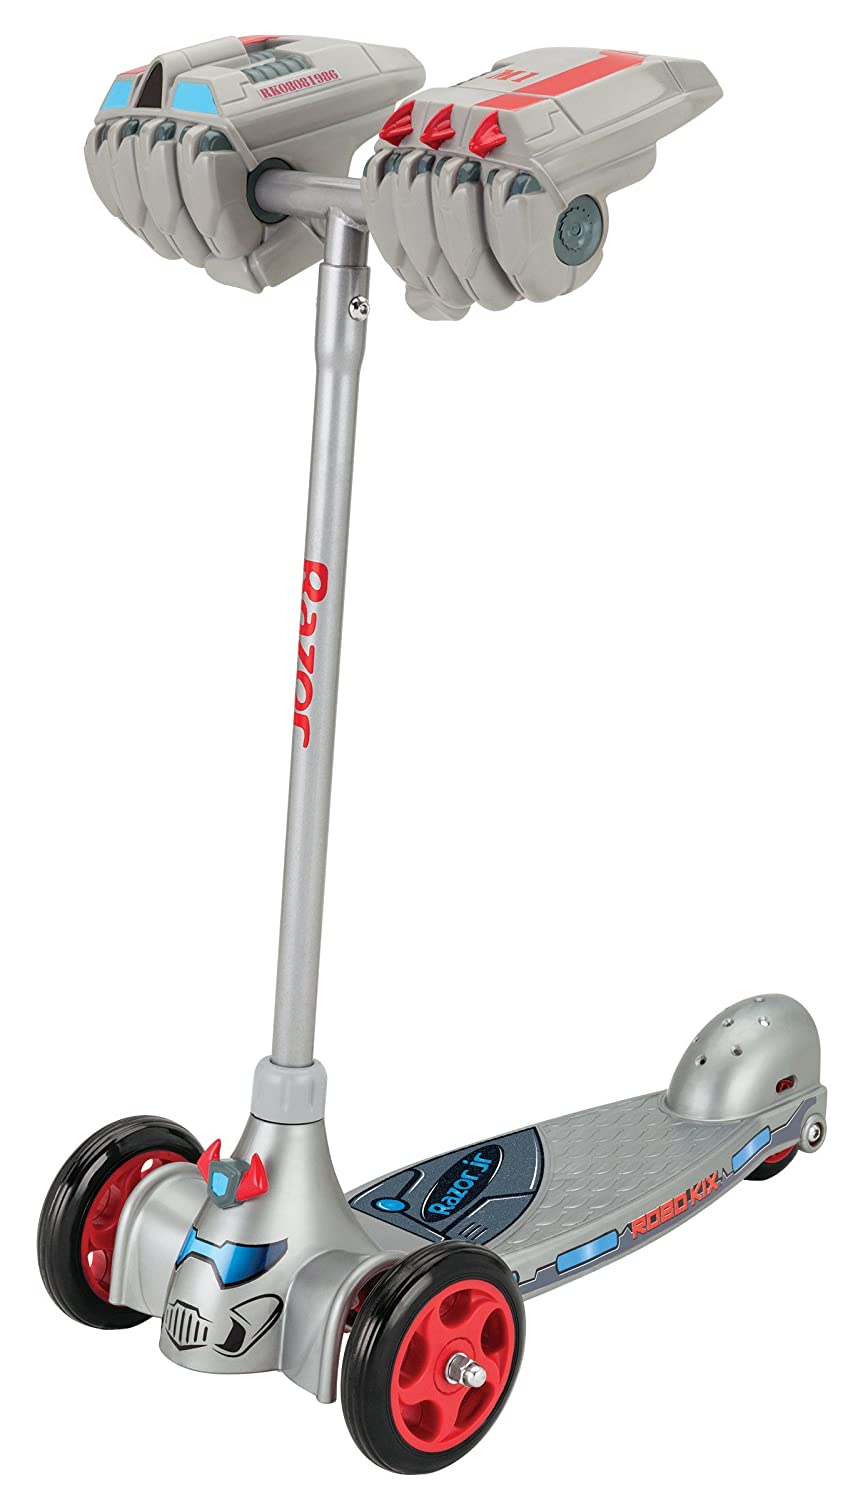 Razor Jr. Robo Kix Scooter